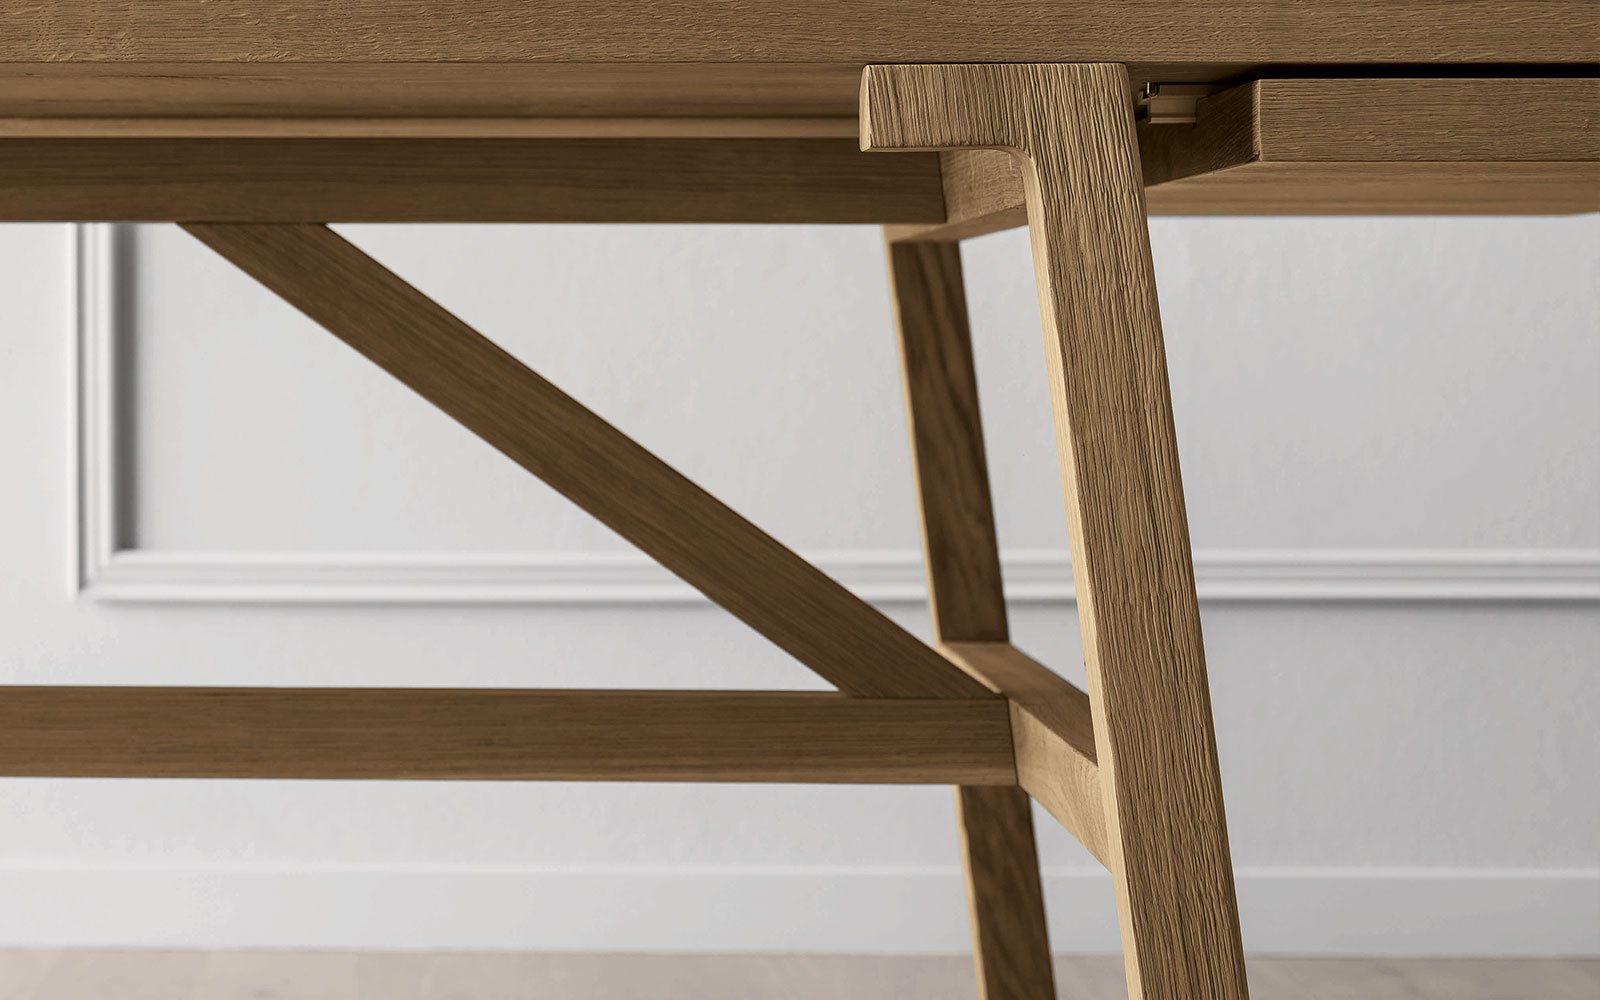 FRATTIONO wooden table details